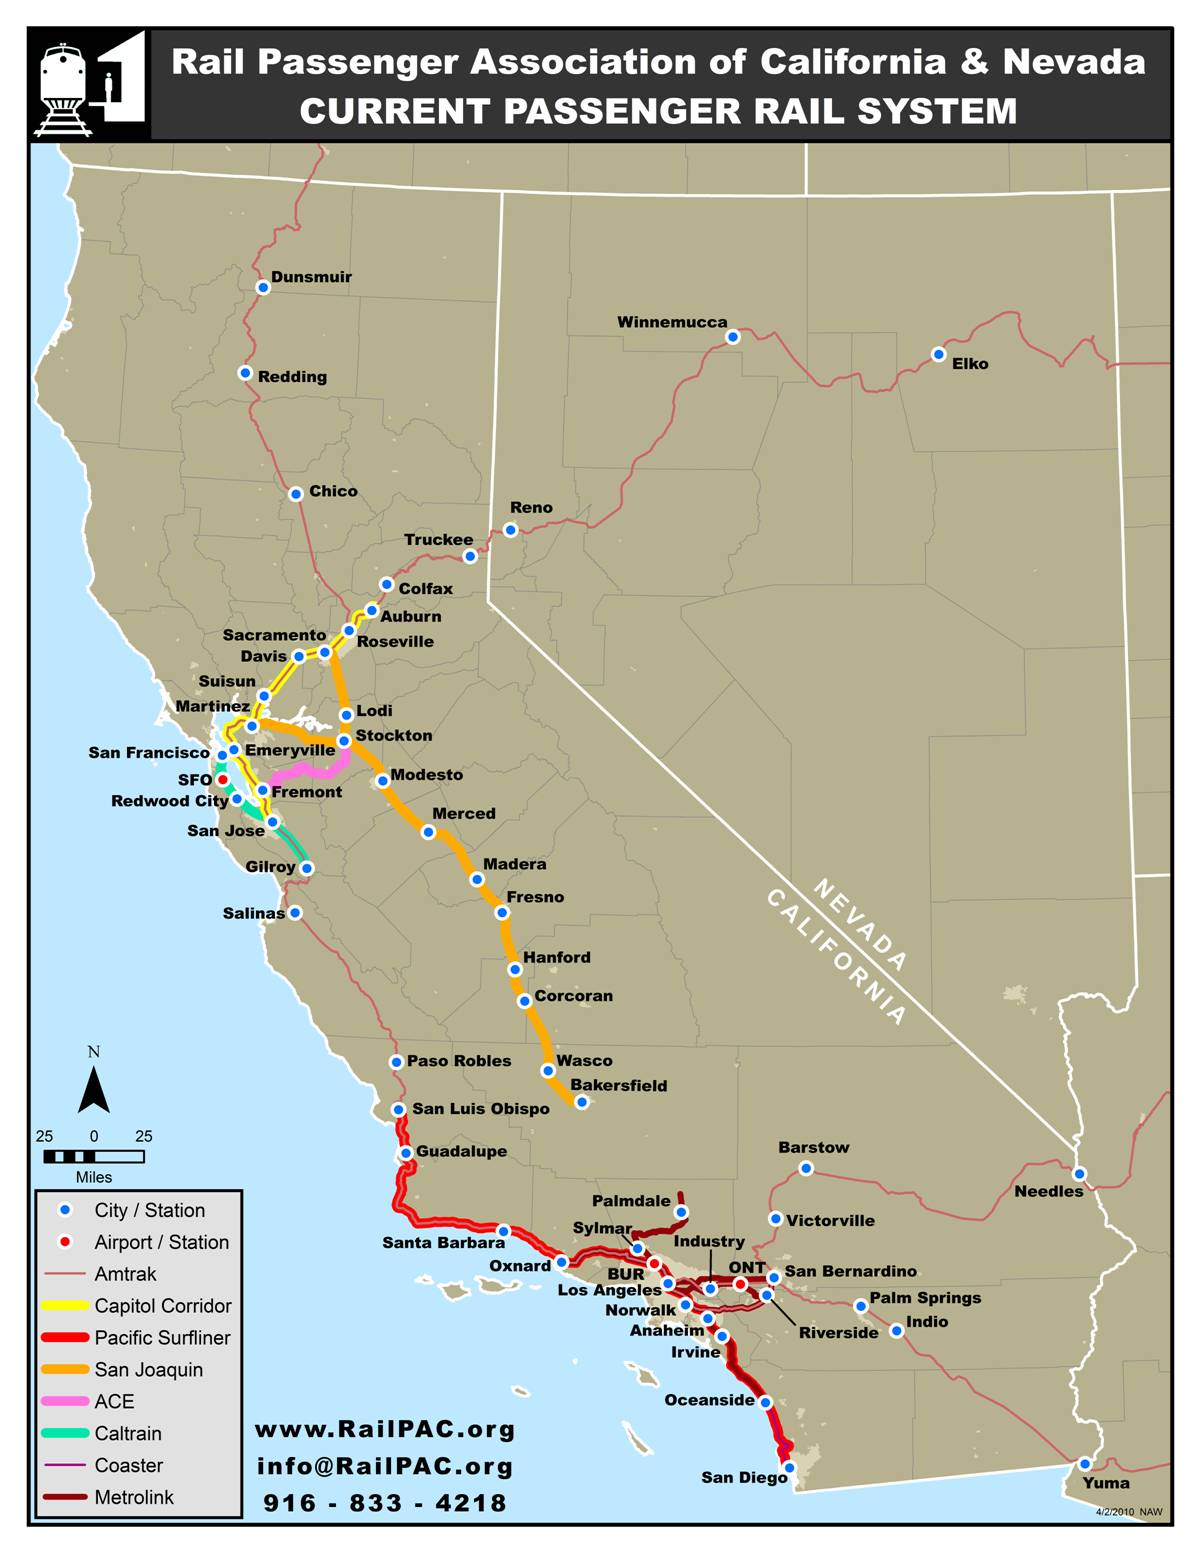 Issues California River Map Amtrak Southern California Map - Amtrak California Surfliner Map